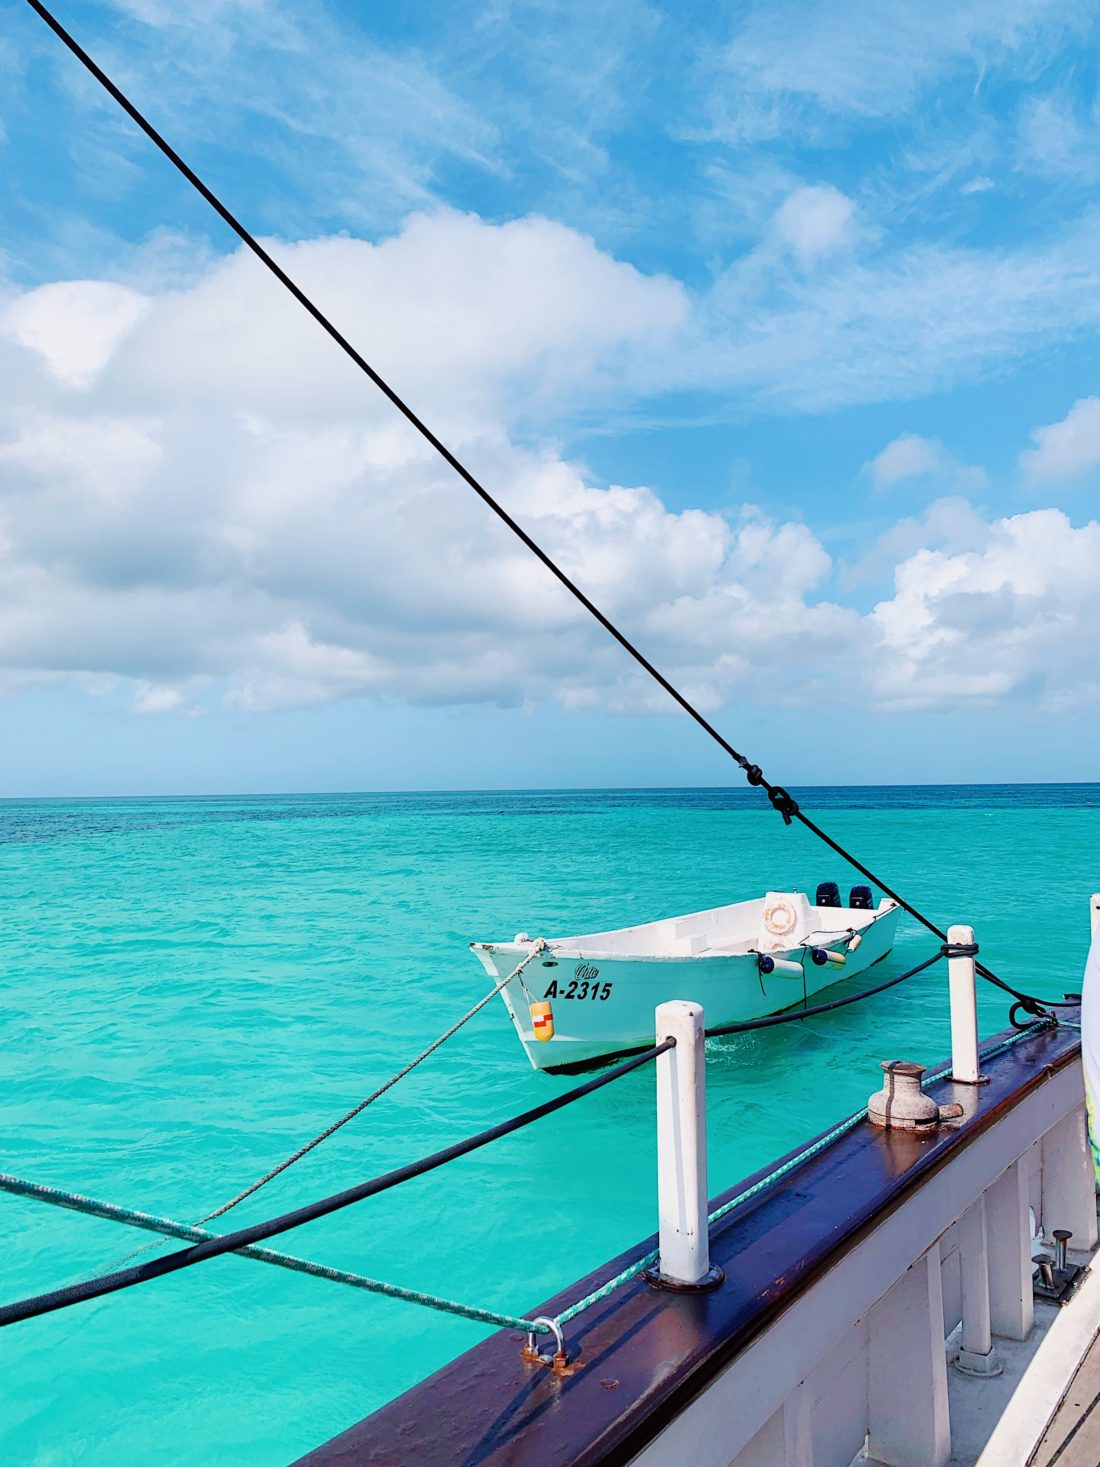 Aruba travel diary, where to stay, where to eat, and what to do